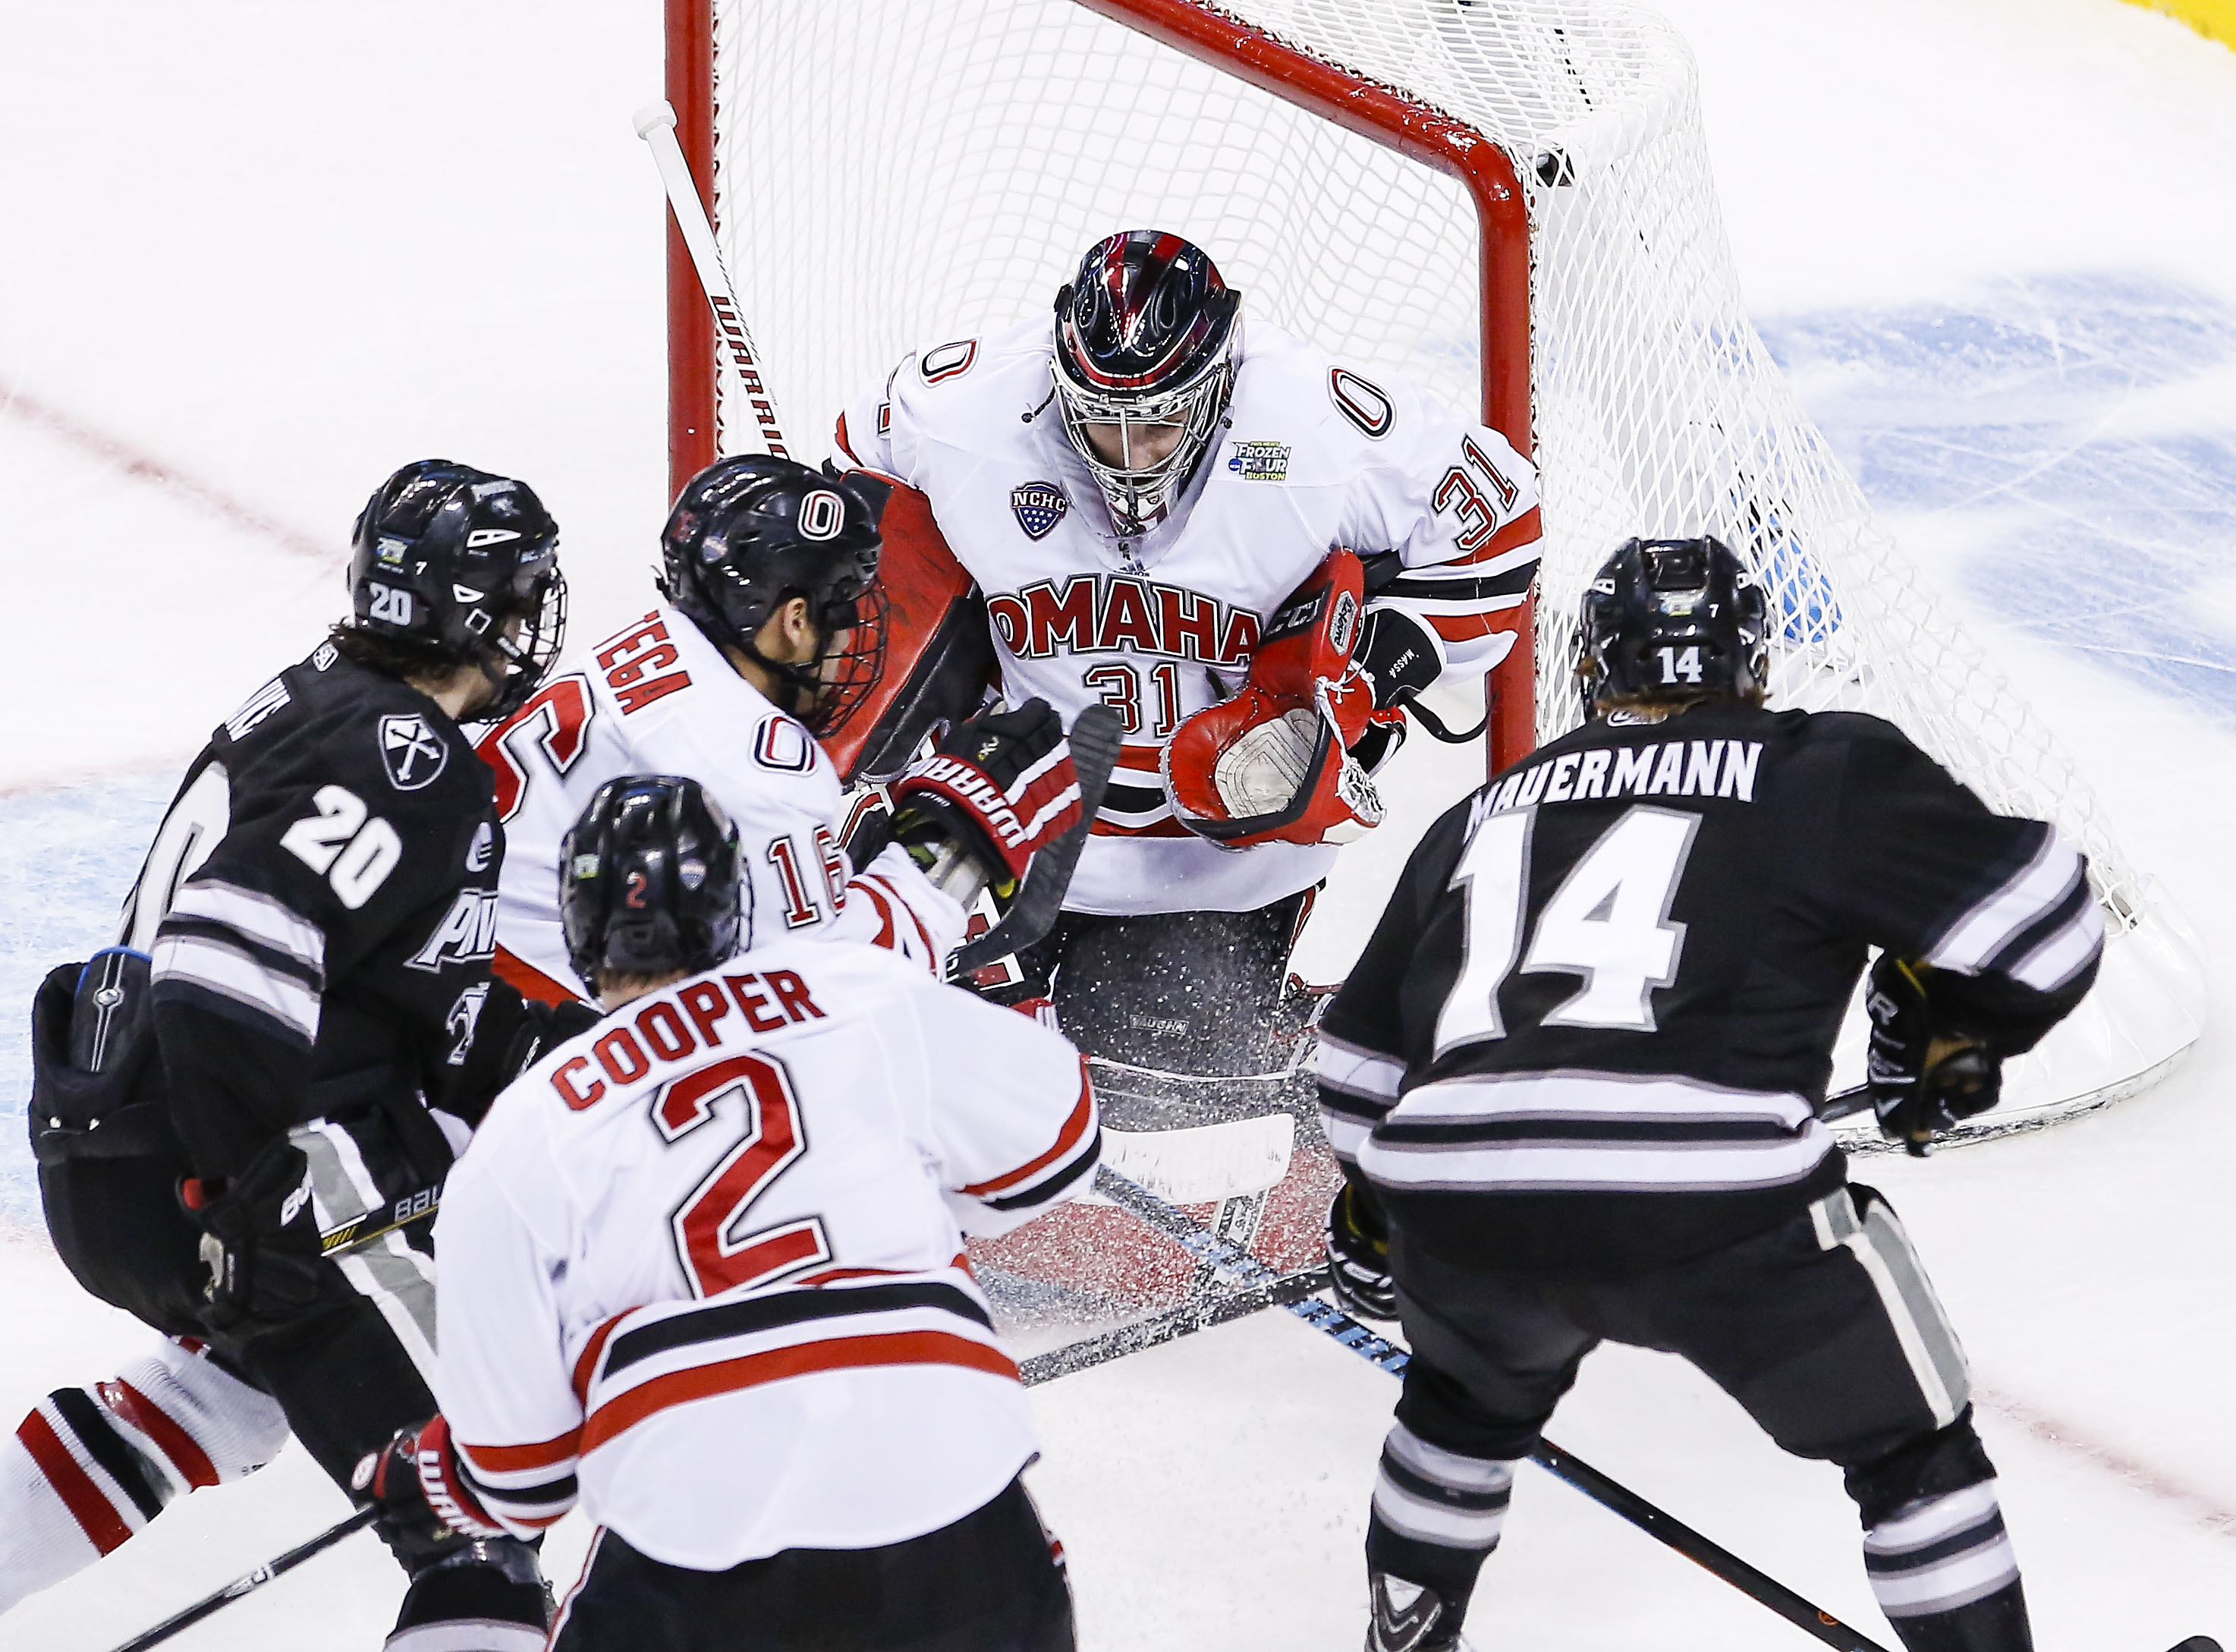 Omaha senior goaltender Ryan Massa was busy all day in the 2015 Frozen Four semifinal loss to Providence College.